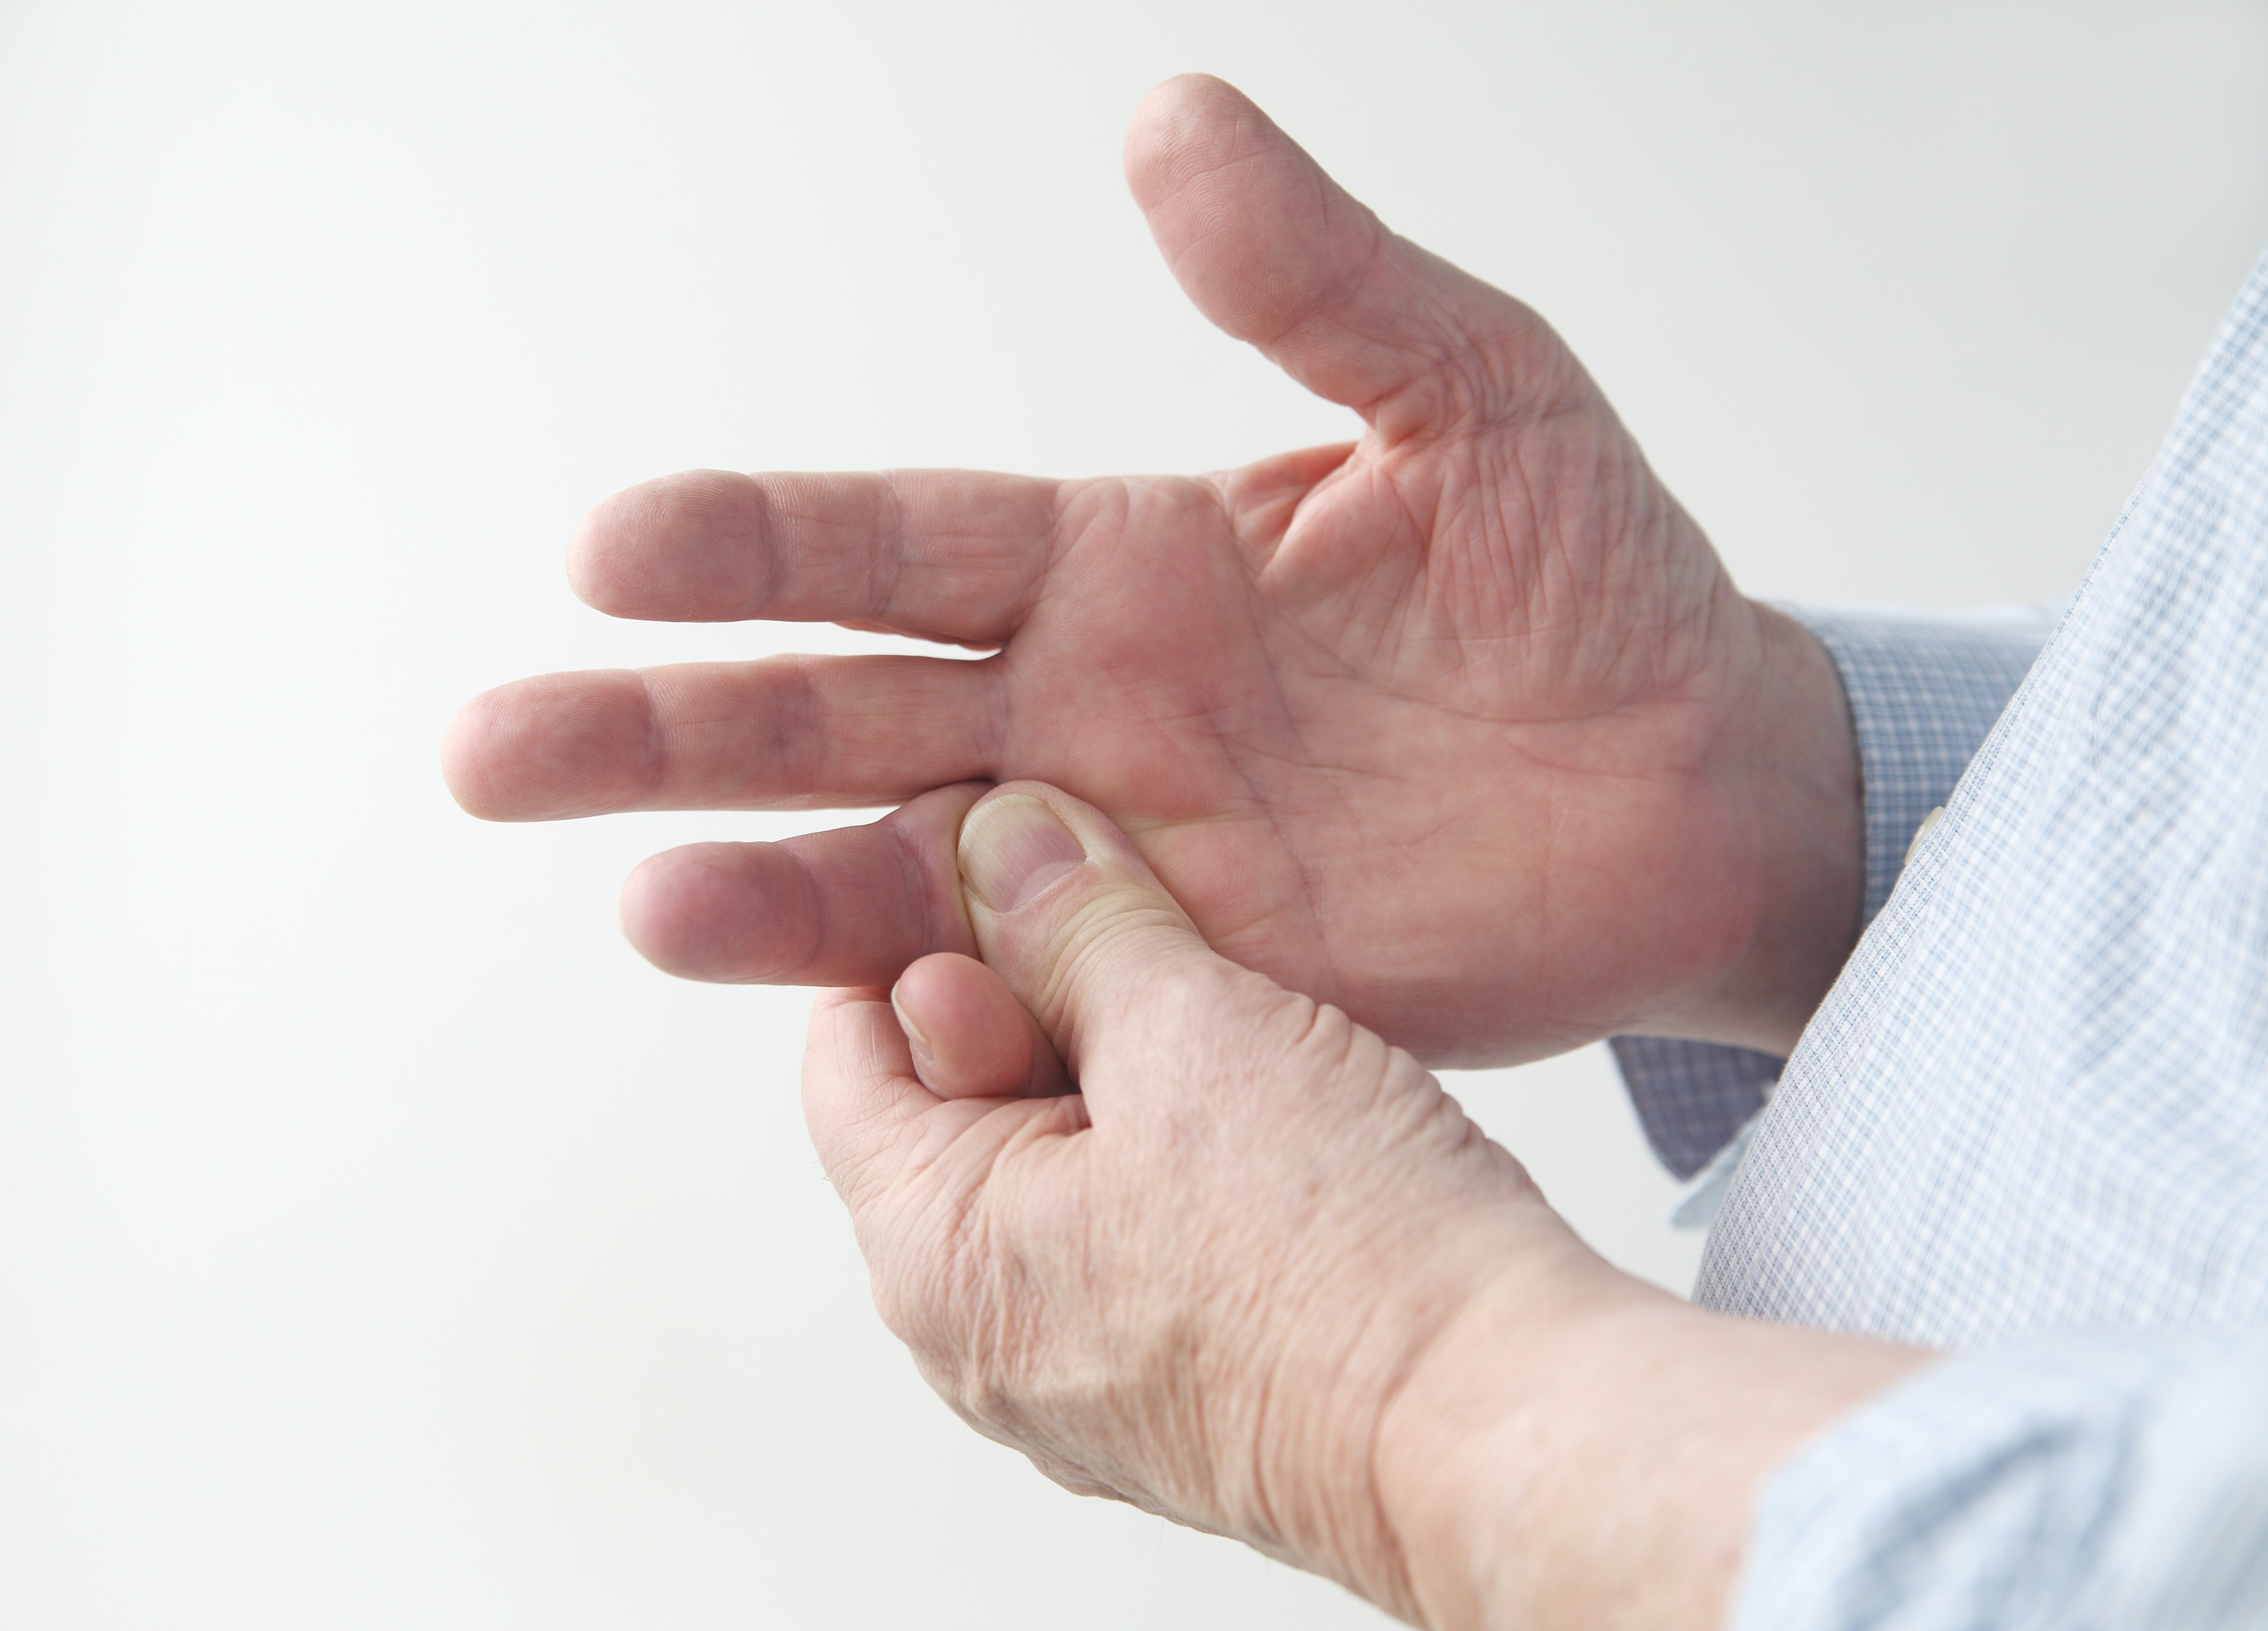 An image depicting a person suffering from numbness in both hands symptoms